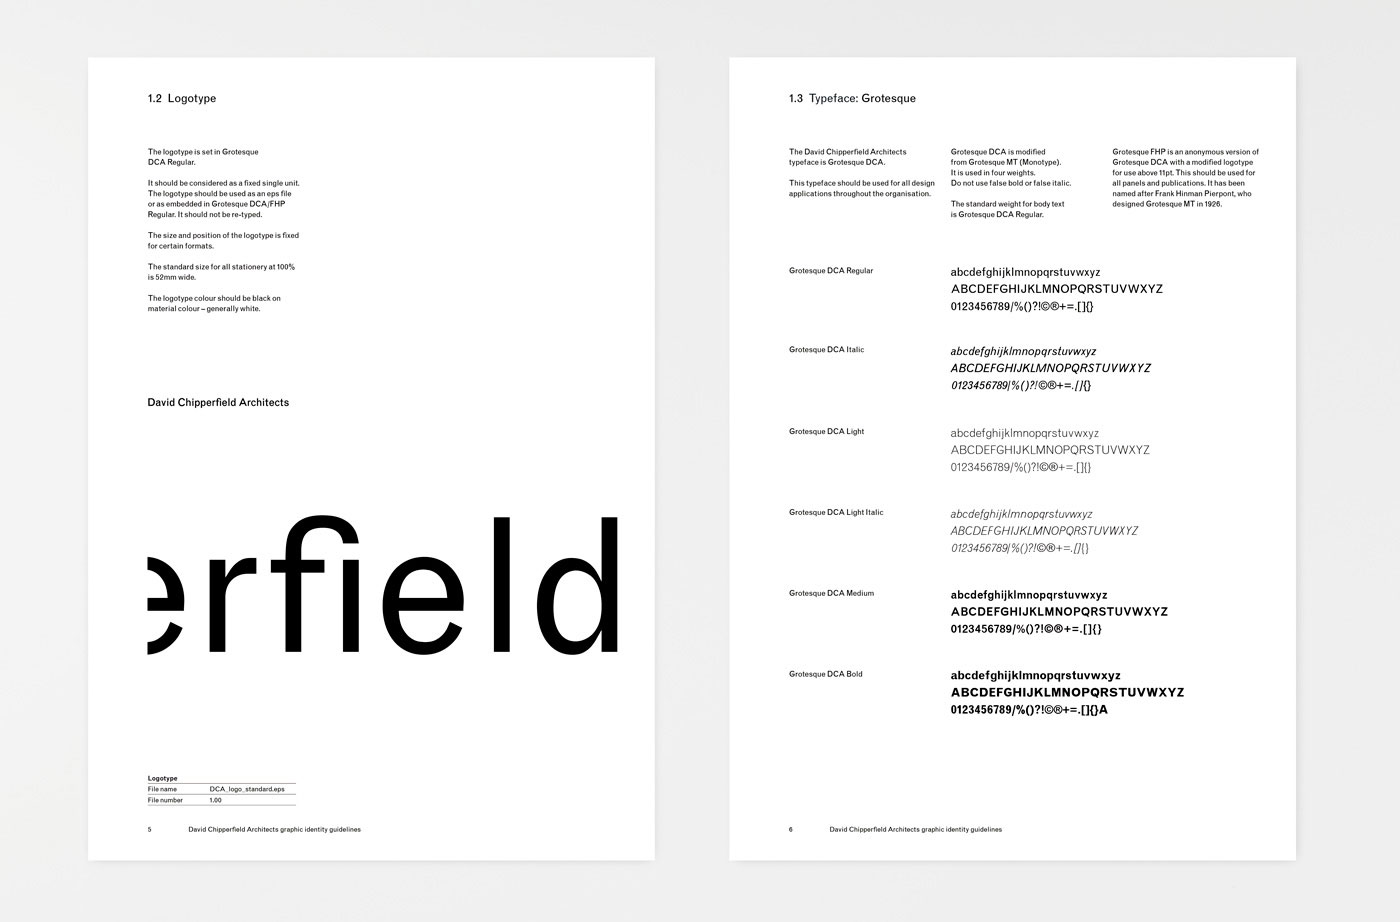 David Chipperfield Architects Identity Fonts In Use